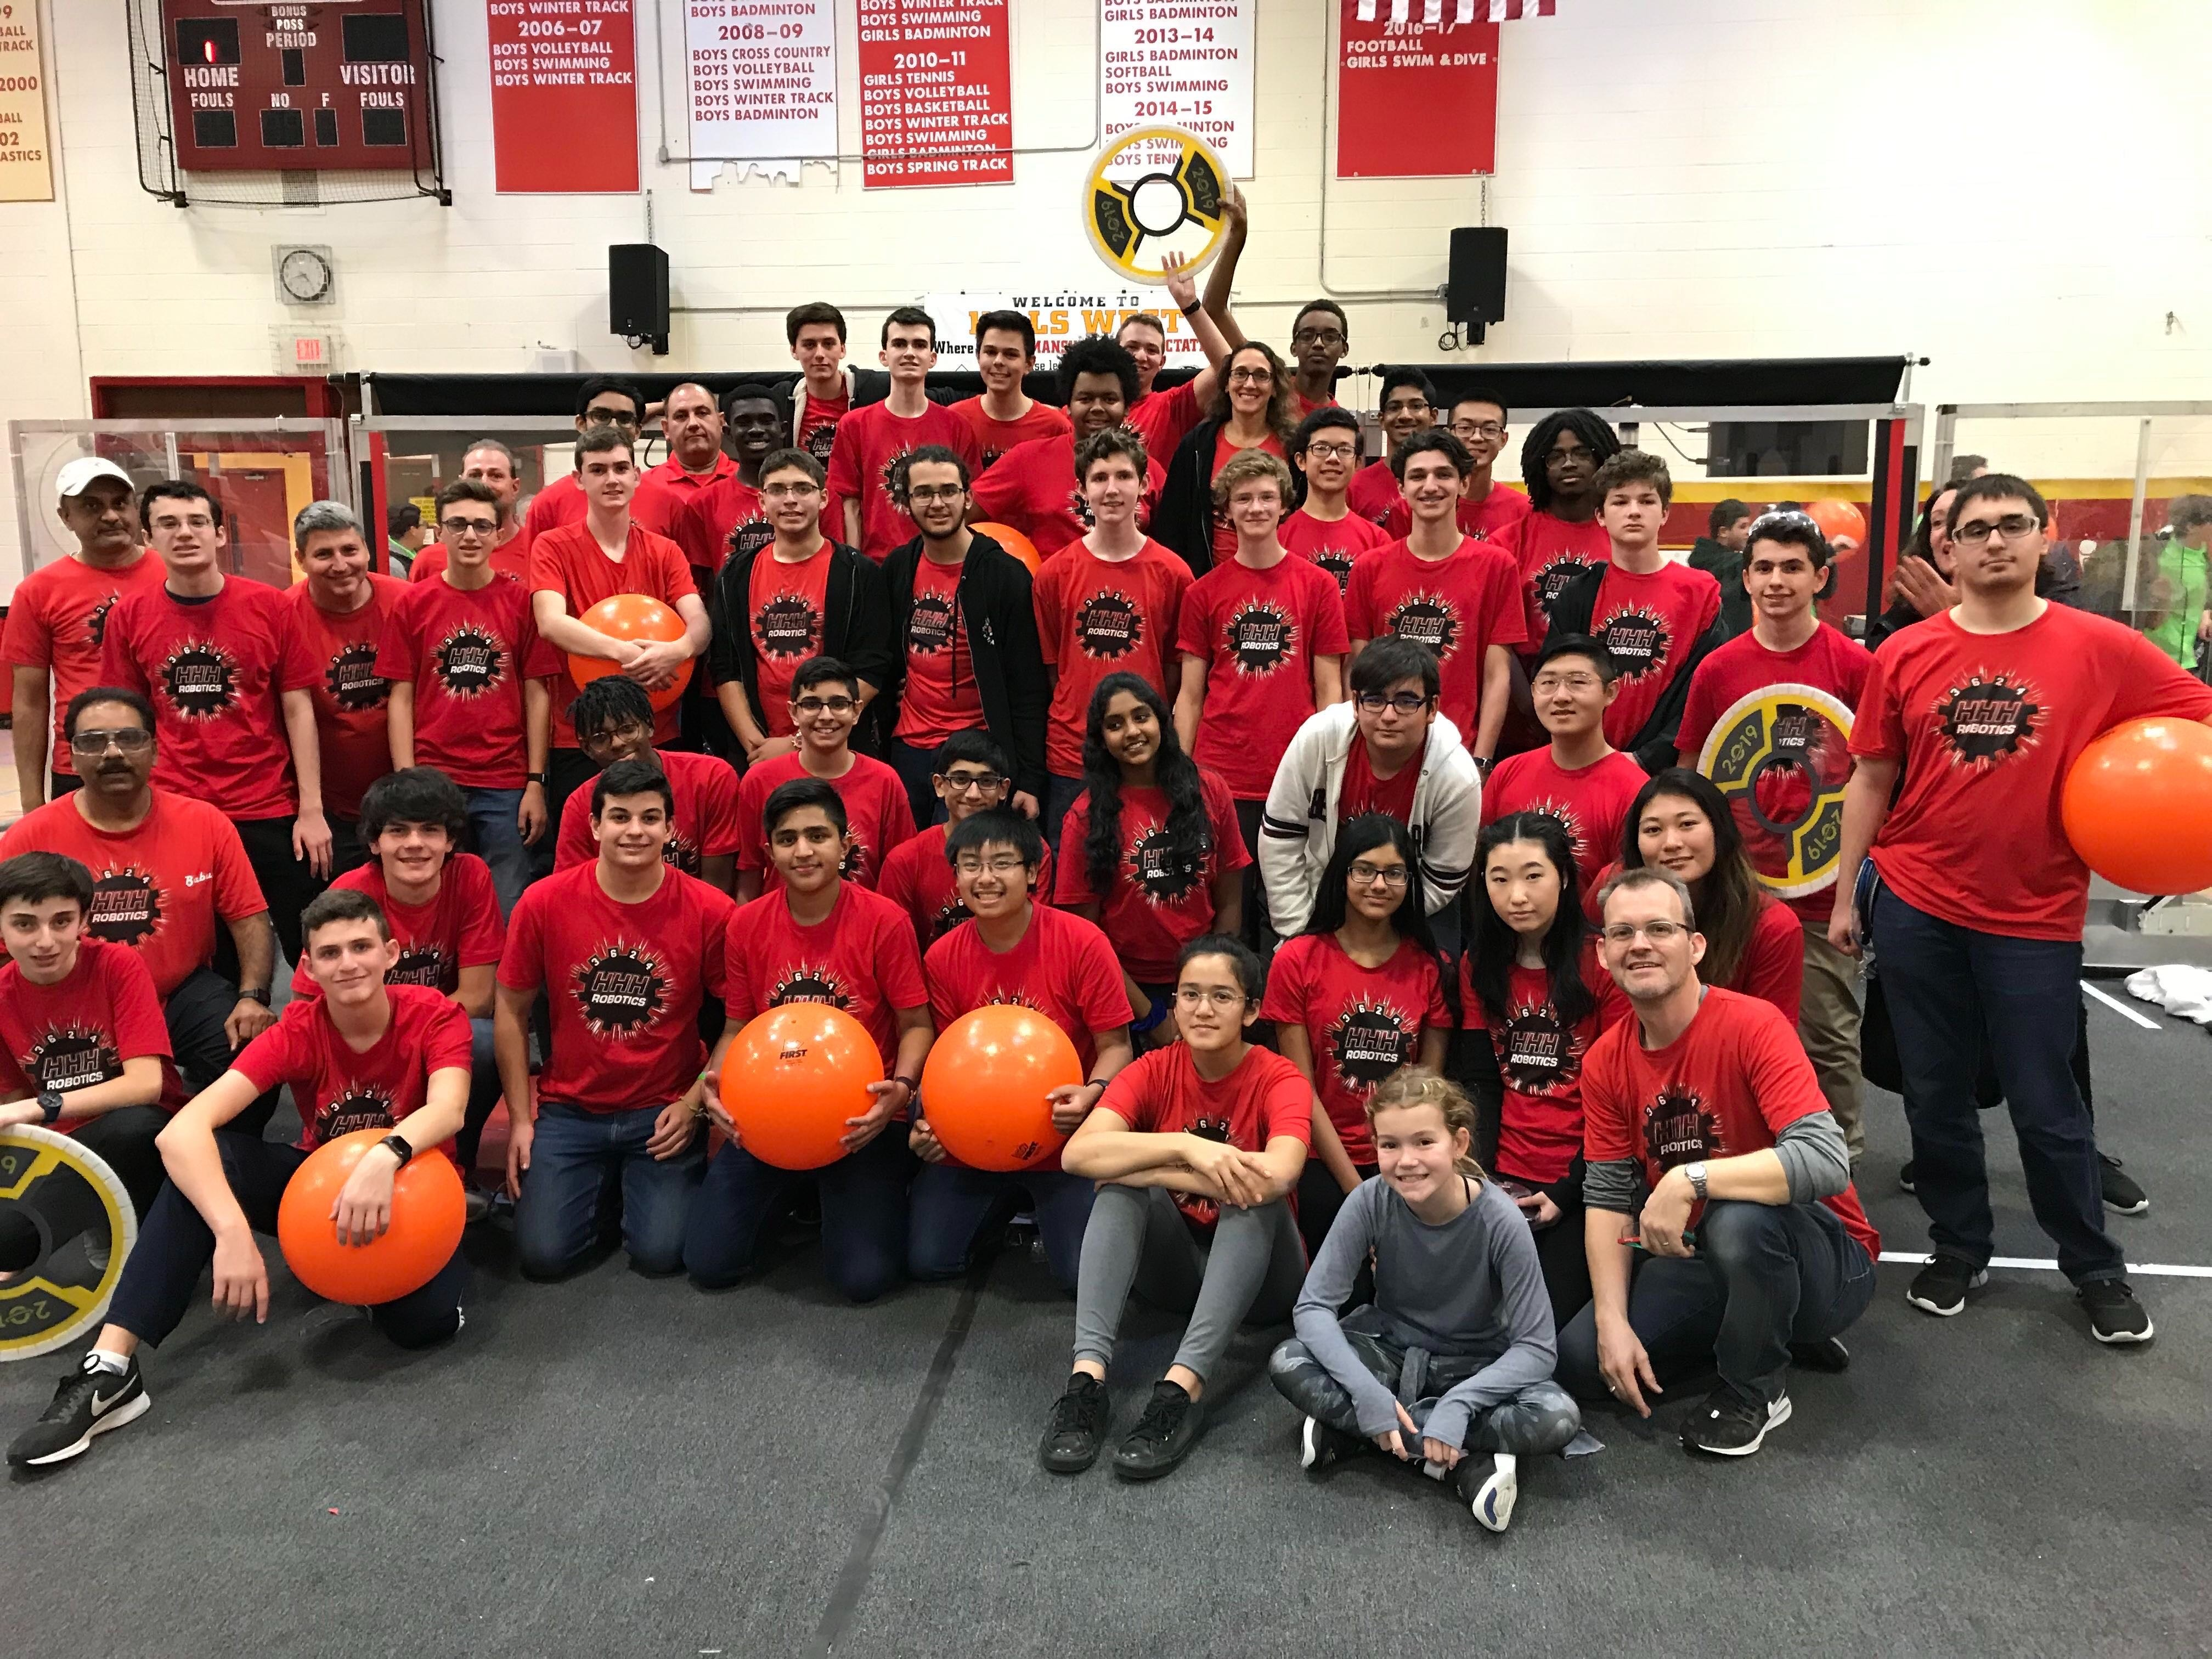 8th Annual Robotics Invitational